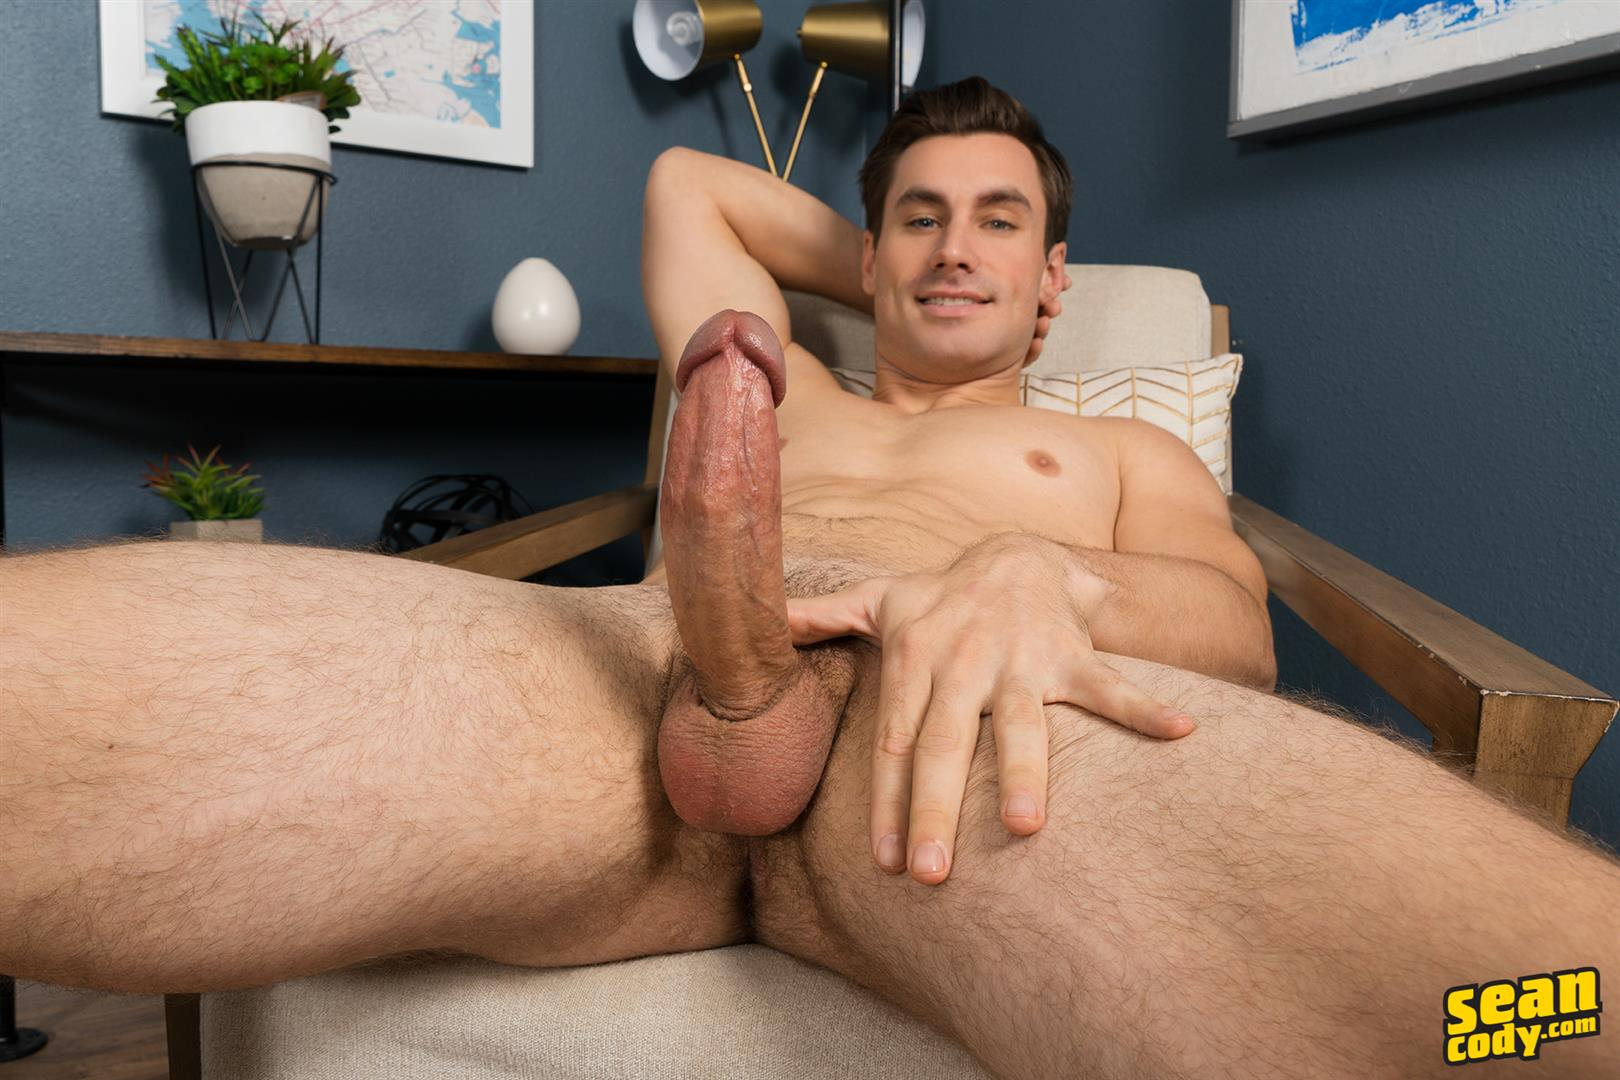 Sean-Cody-Giovanni-Straight-Guy-Jerking-Off-Thick-Curved-Italian-Cock-04 Straight Muscular Italian-American Jerks Off His Big Thick Curved Cock